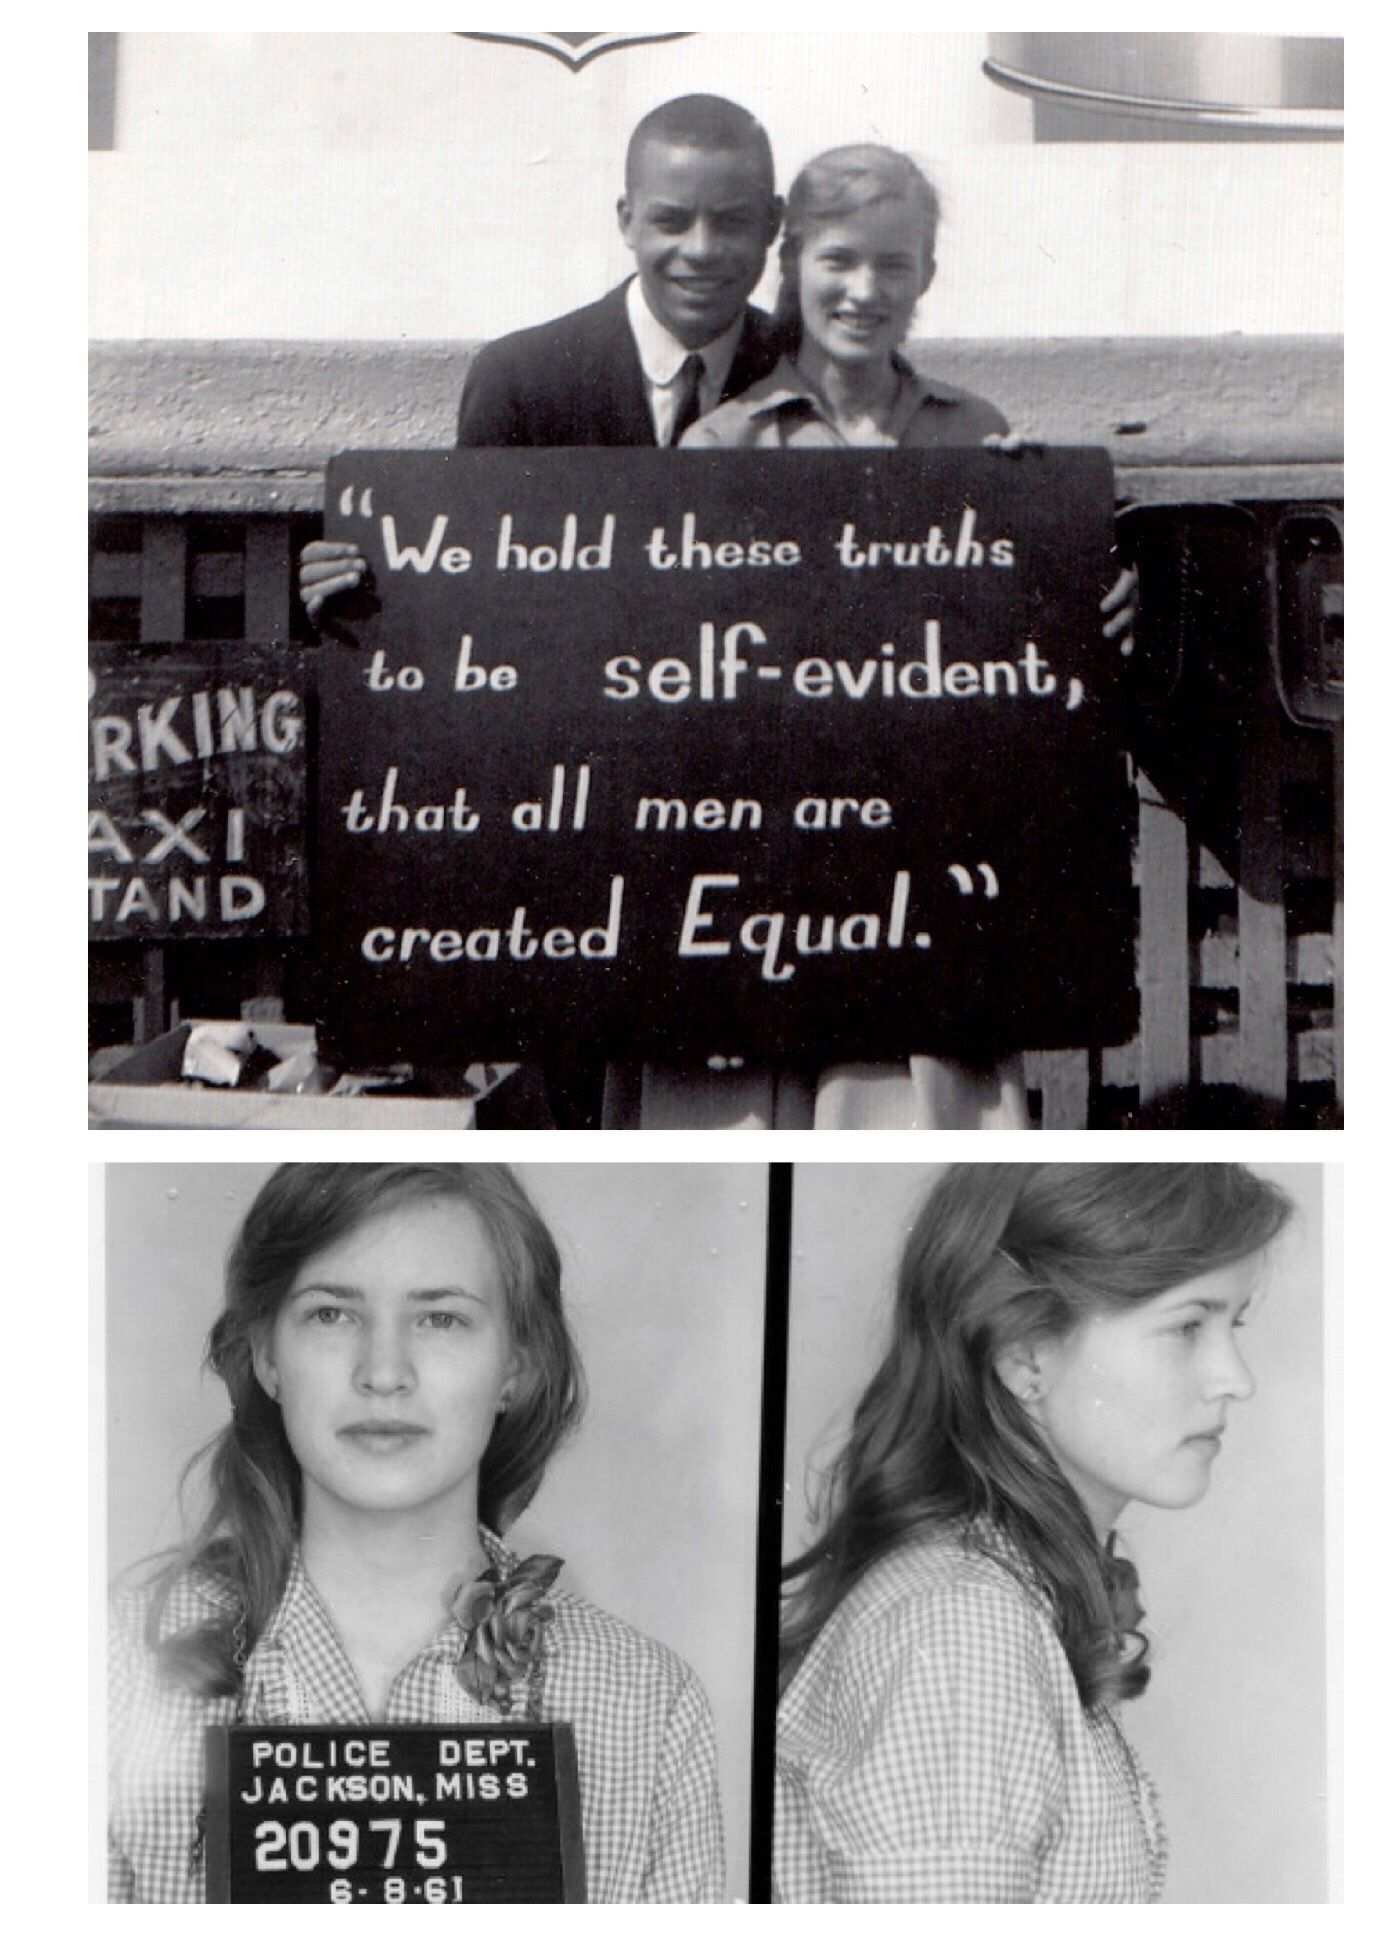 Pin By Anneliese Kathryn On One Man Can Change The World In 2021 Civil Rights Activists Civil Rights Movement Freedom Riders